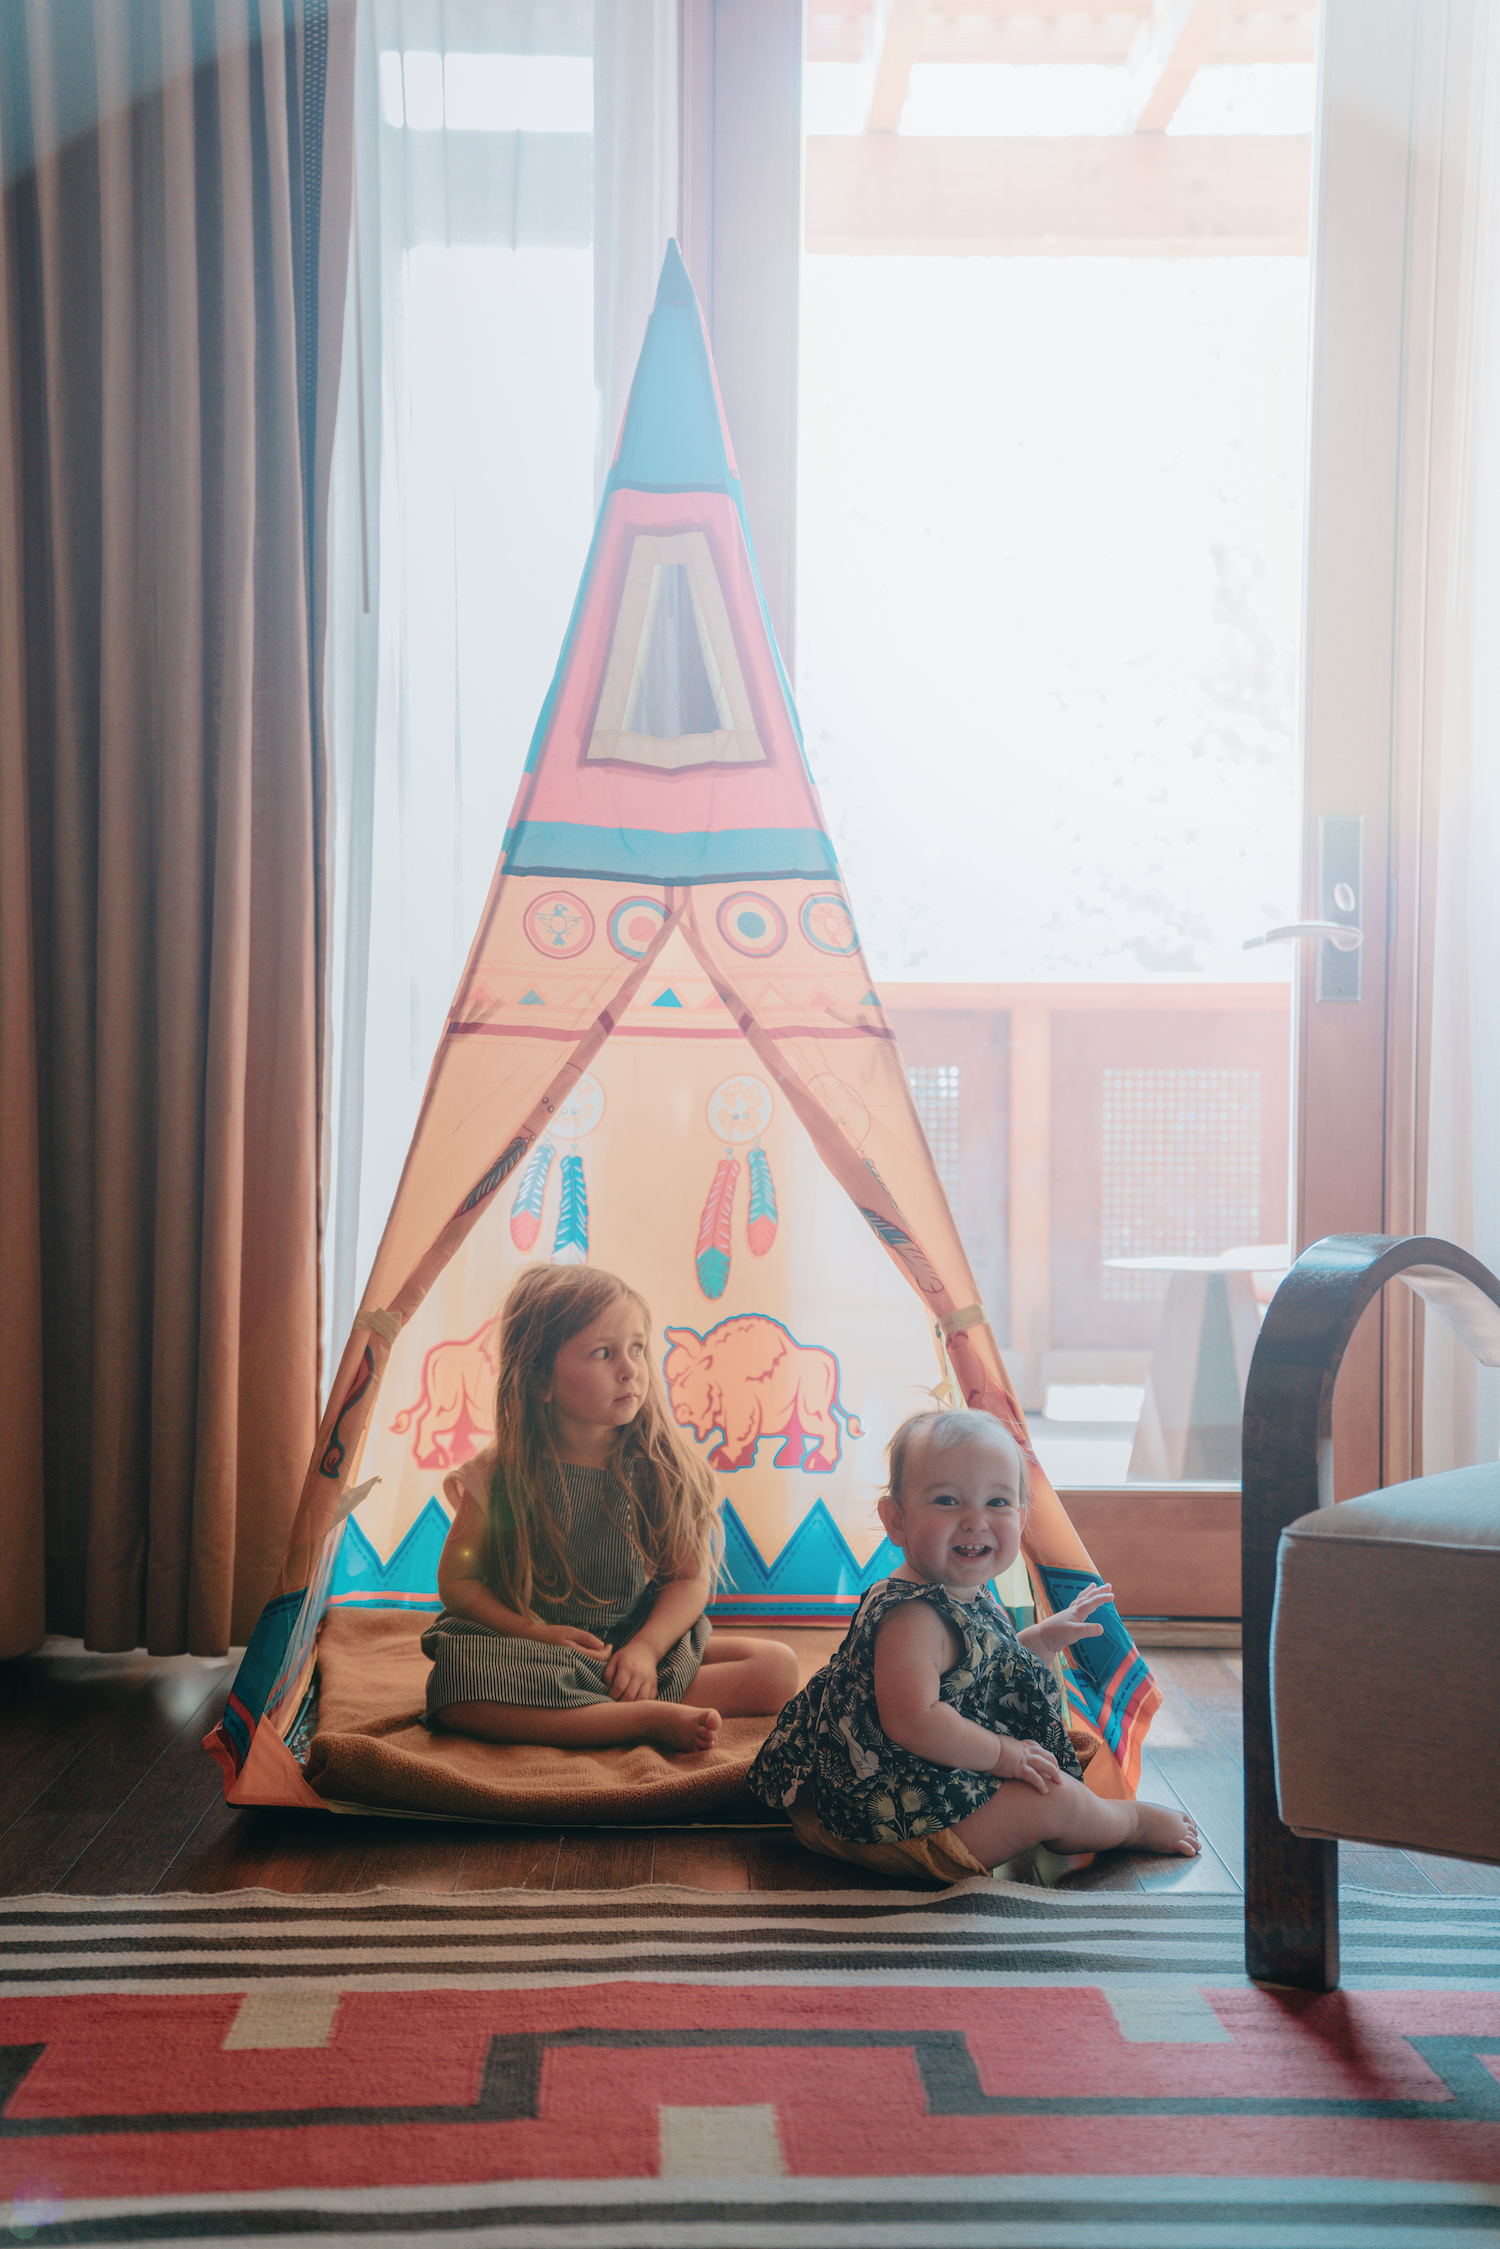 Children in a teepee